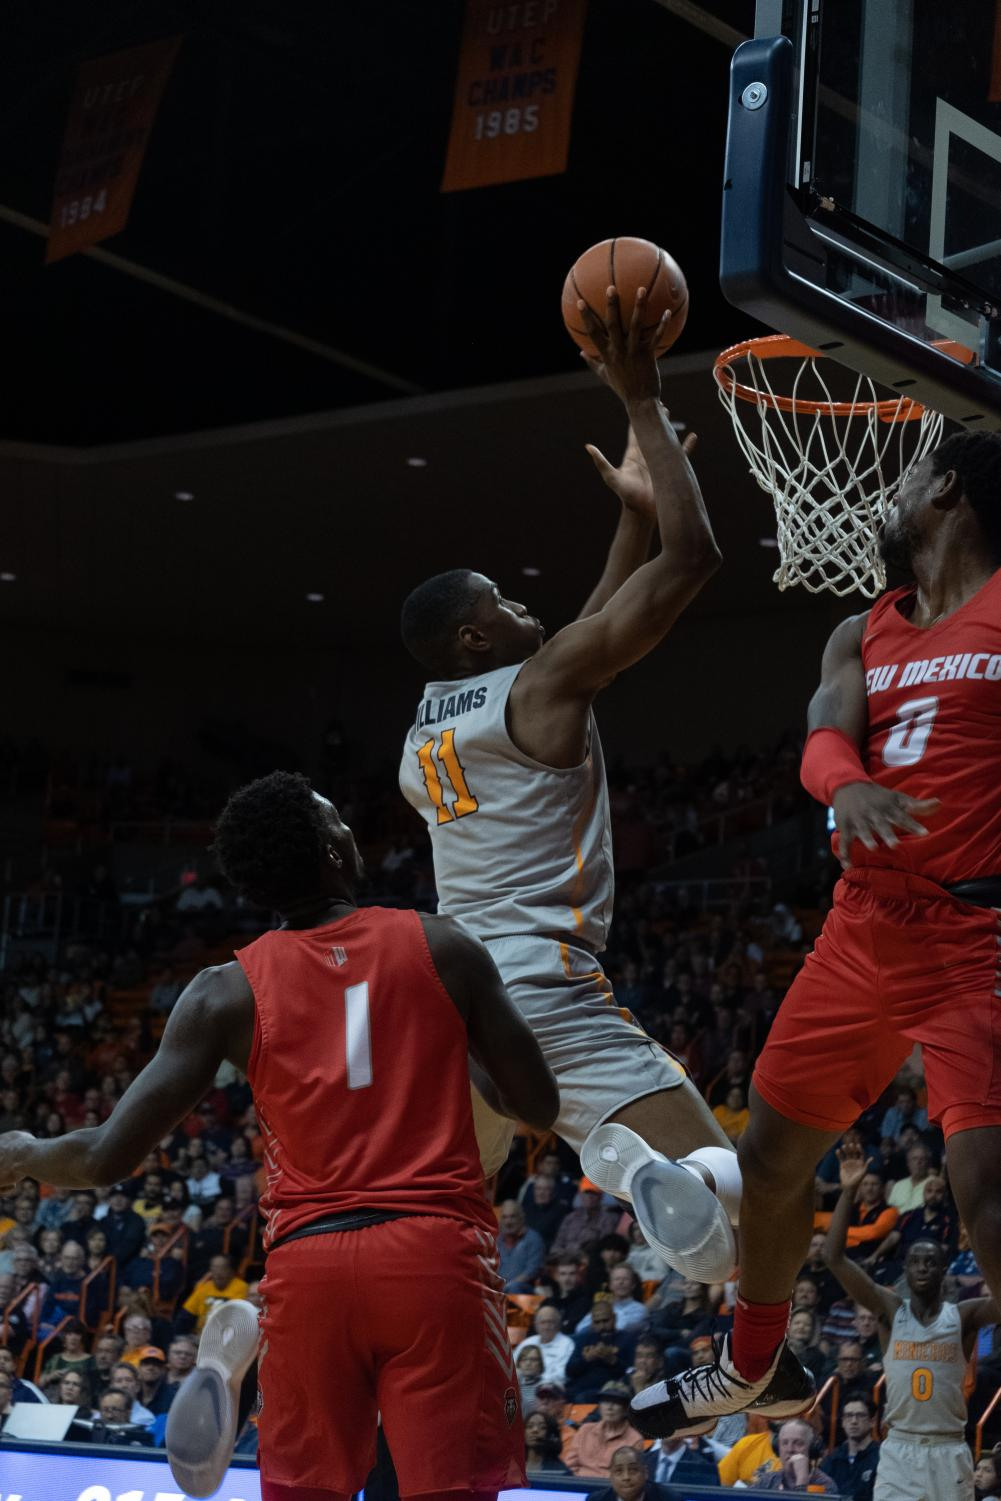 UTEP junior forward Bryson Williams drives to the basketball against UNM at the Don Haskins Center.